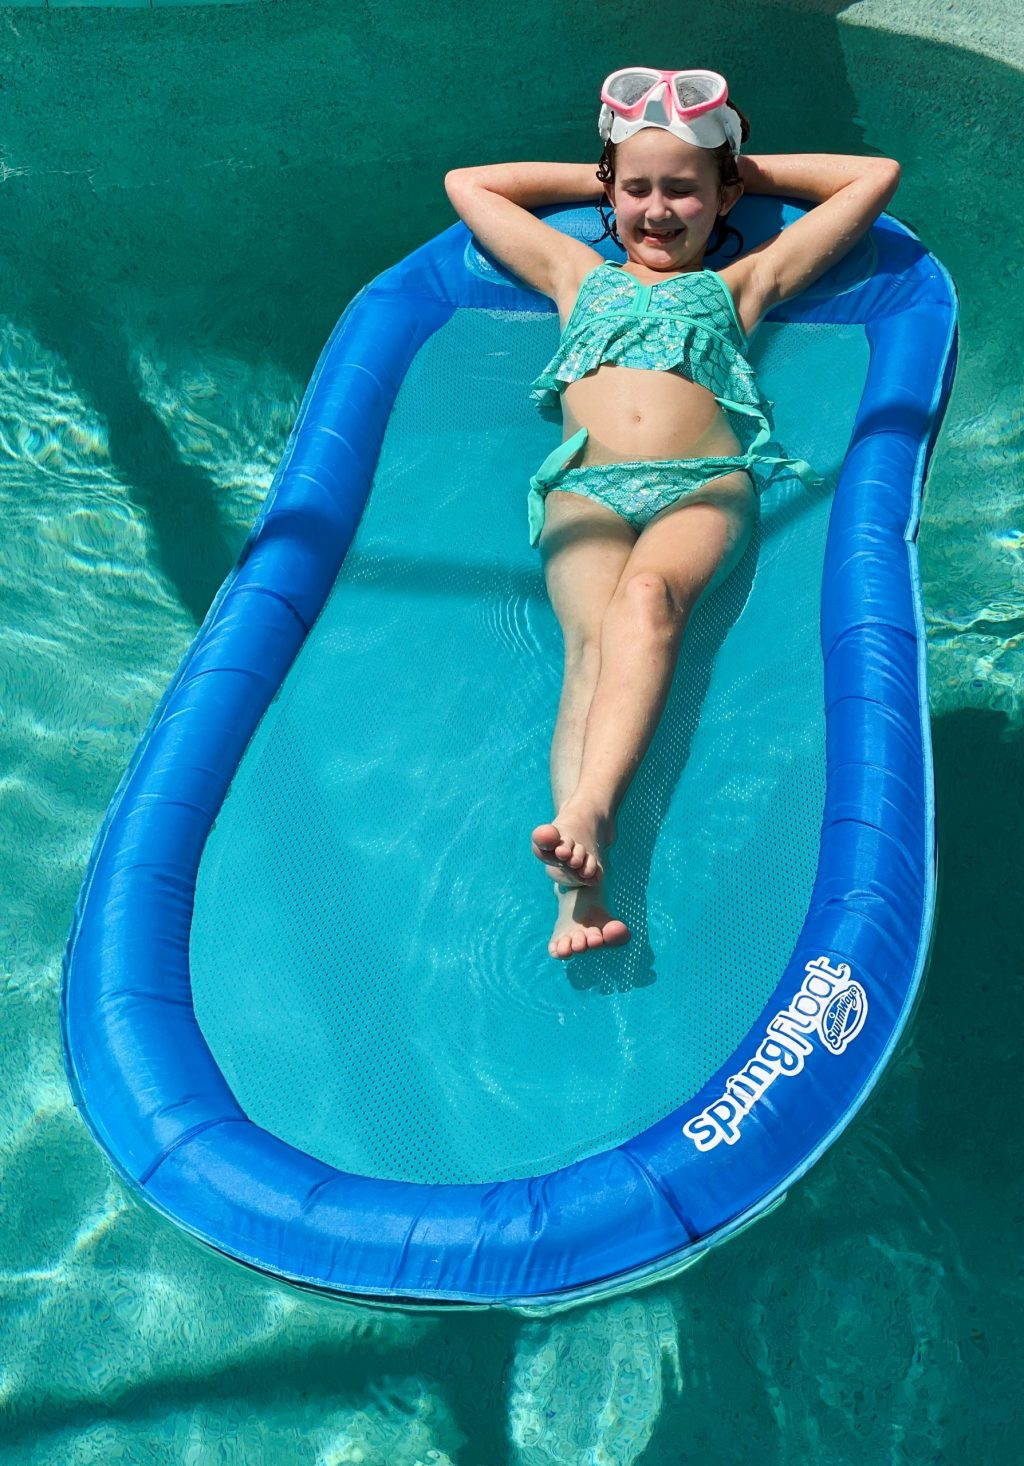 little girl in green swimsuit floating on blue spring float in pool